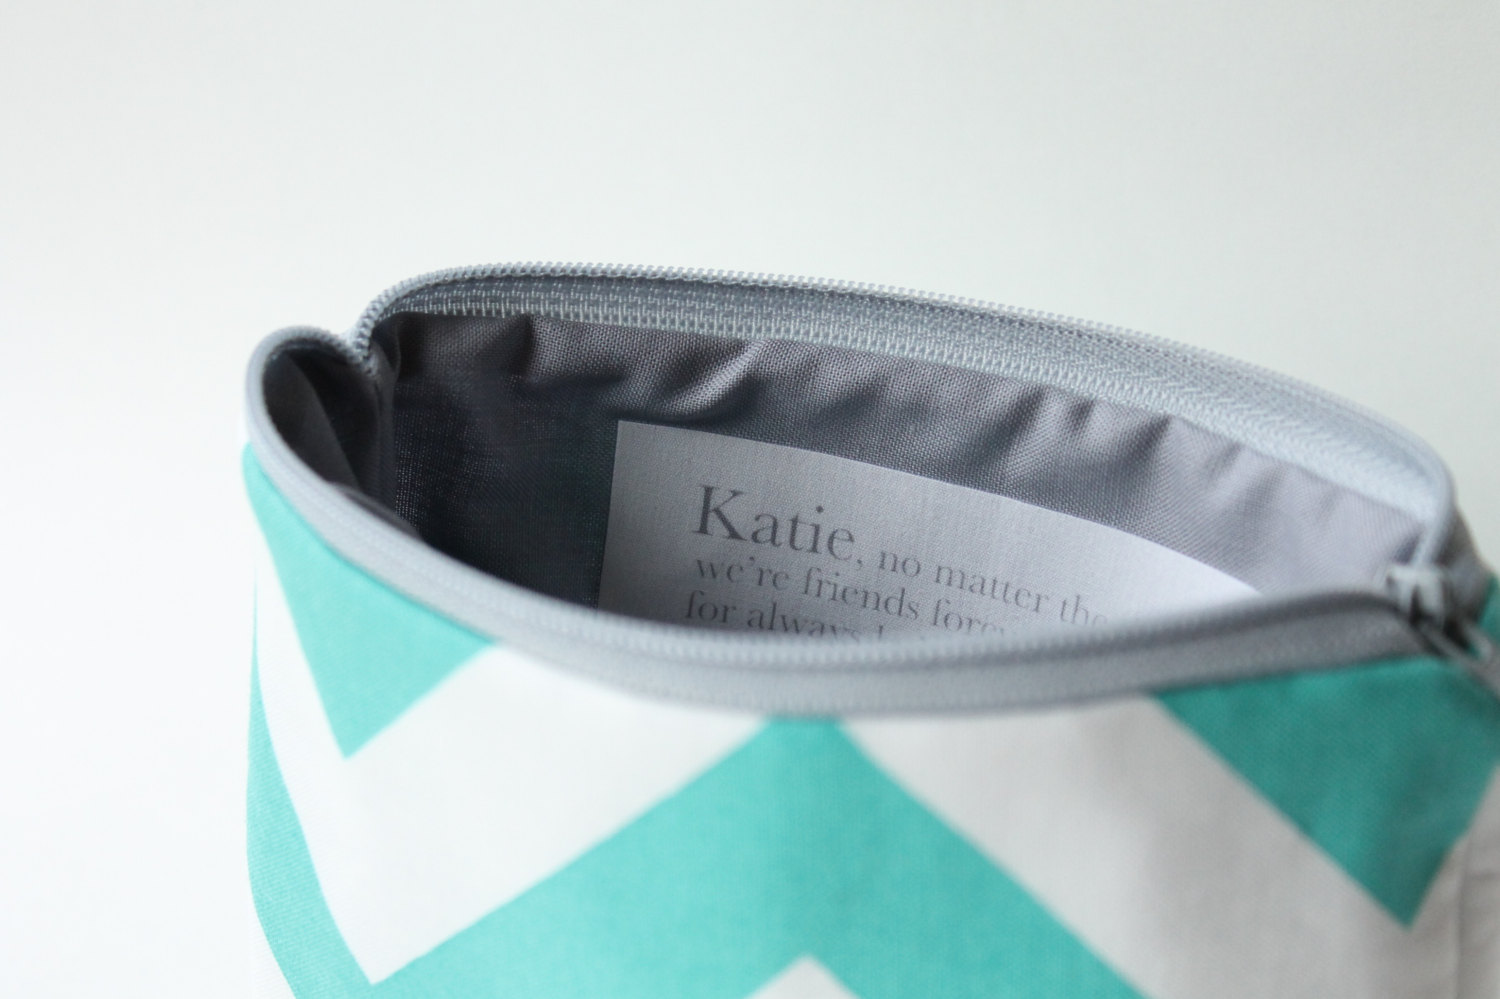 Bridesmaid bags messages inside | by Allisa Jacobs | Emmaline Bride, The Handmade Wedding Blog EmmalineBride.com